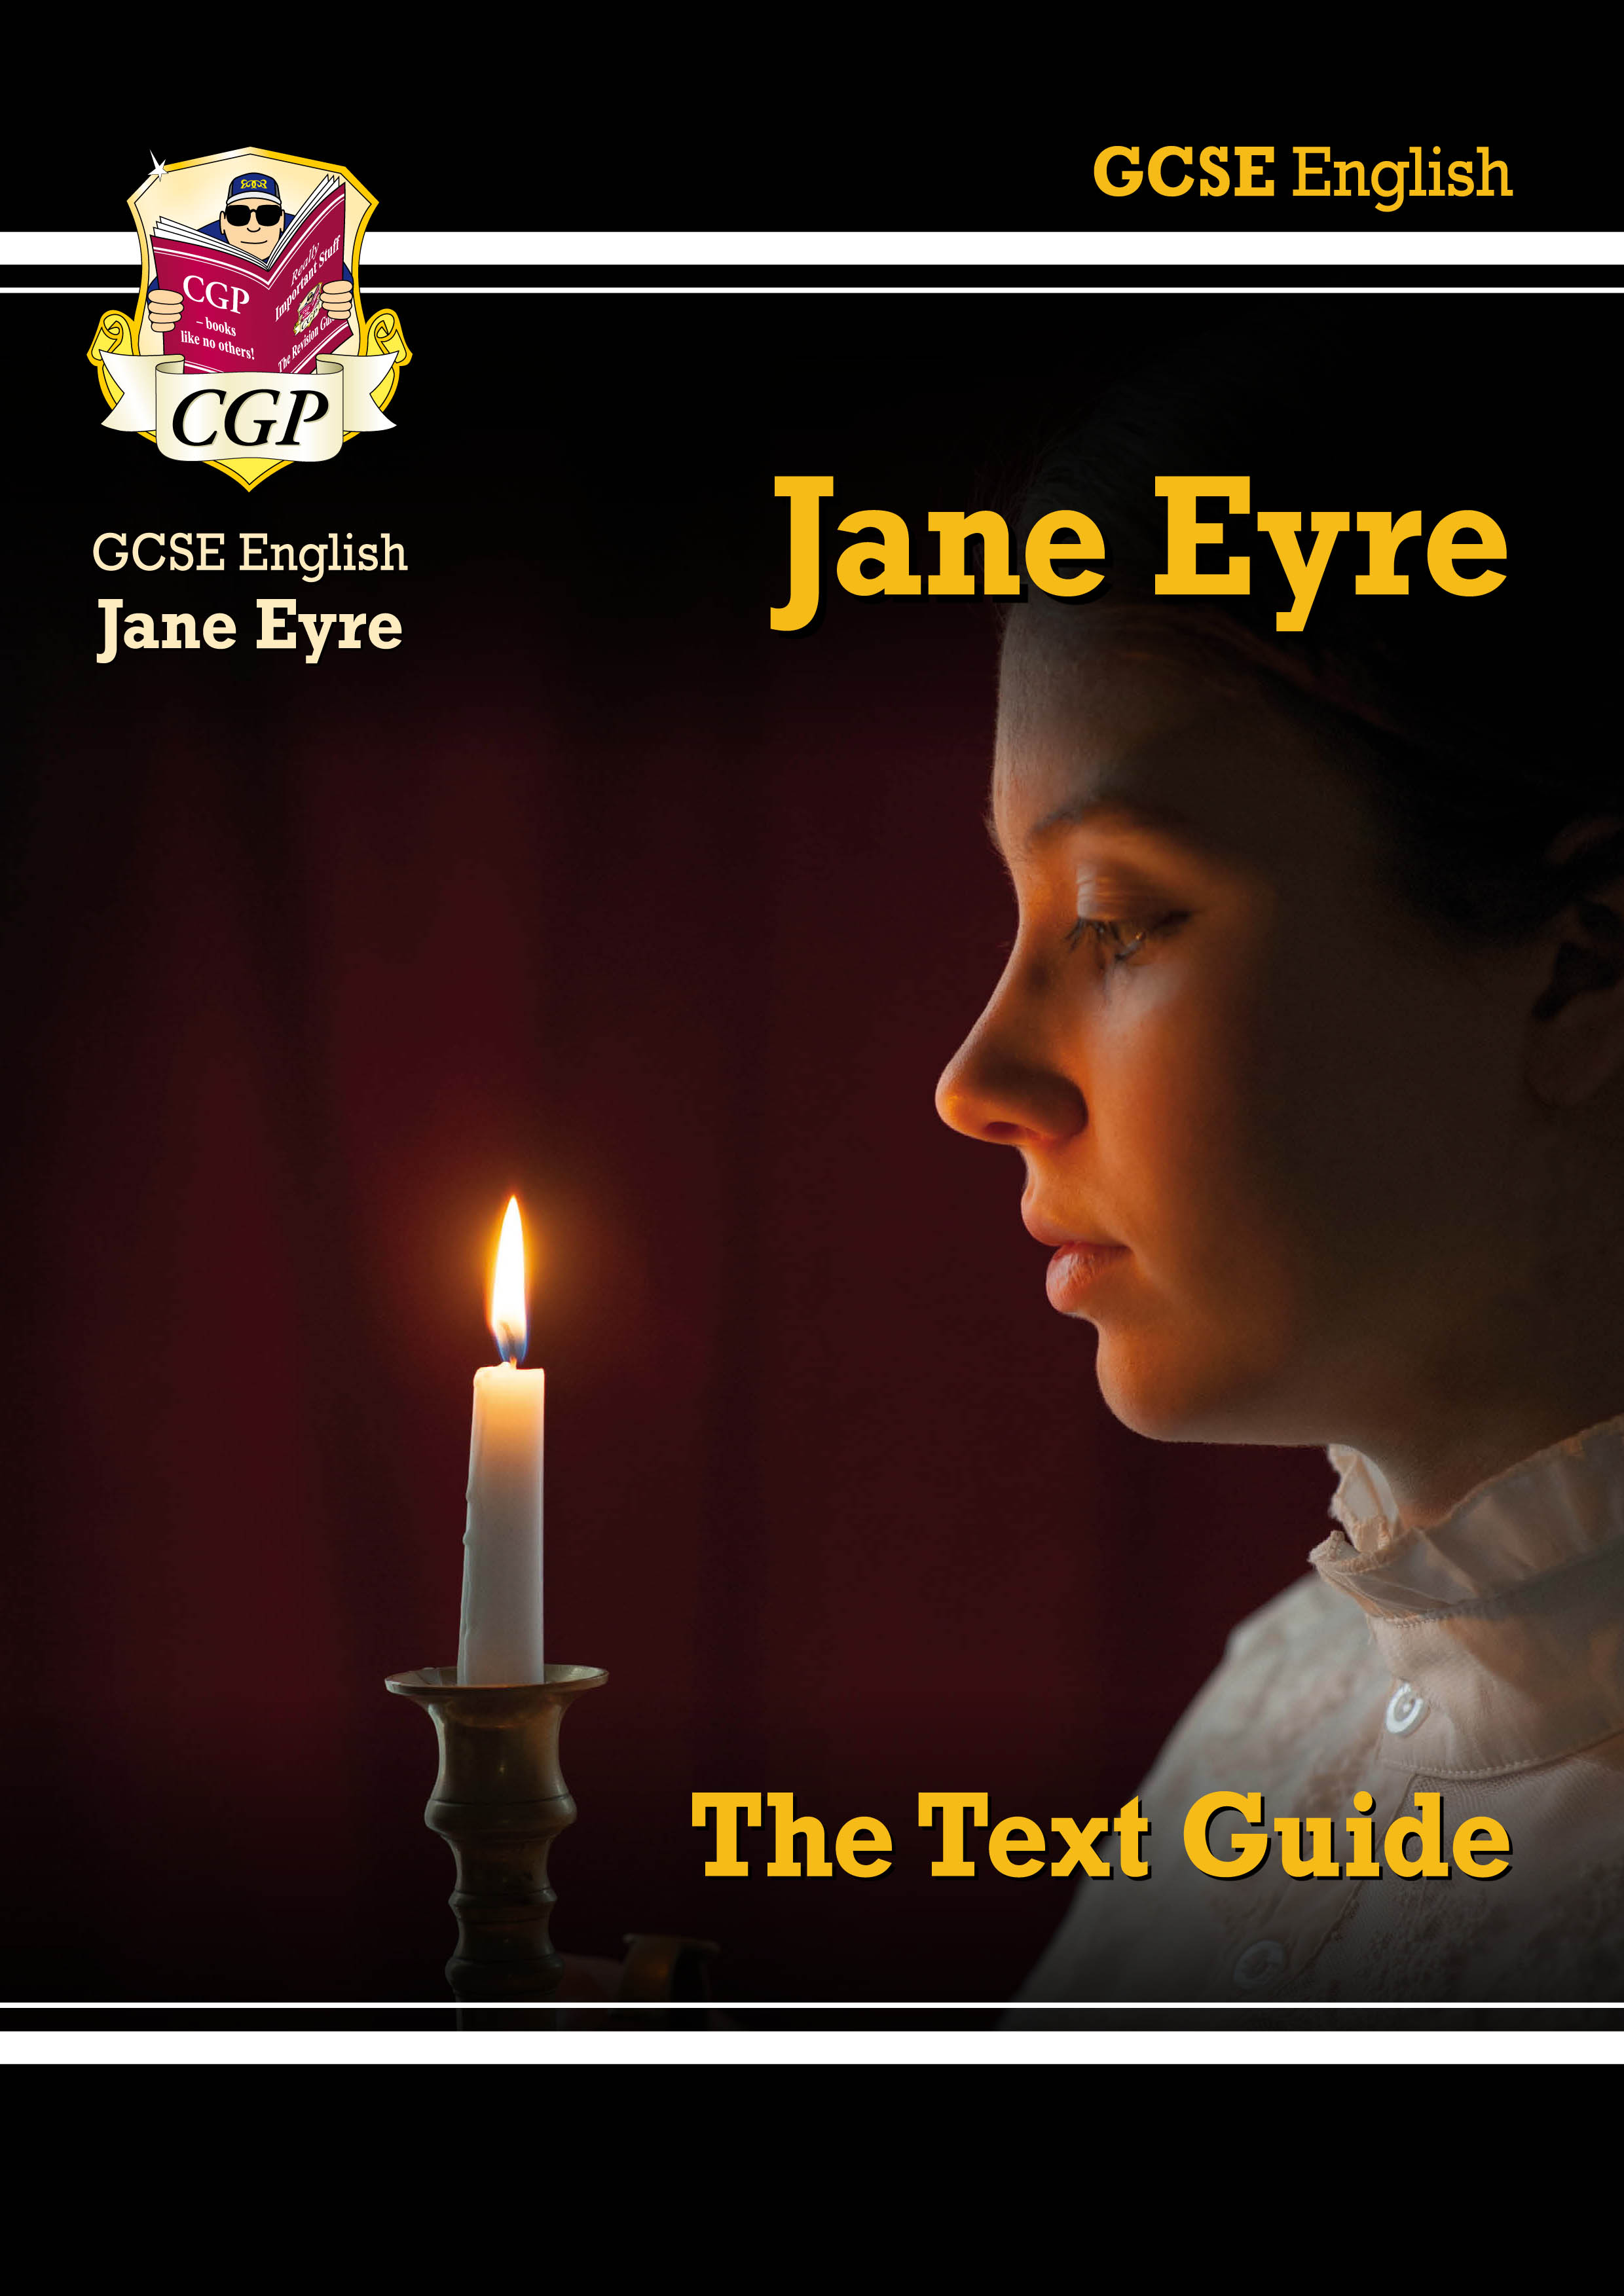 ETJE41DK - Grade 9-1 GCSE English Text Guide - Jane Eyre